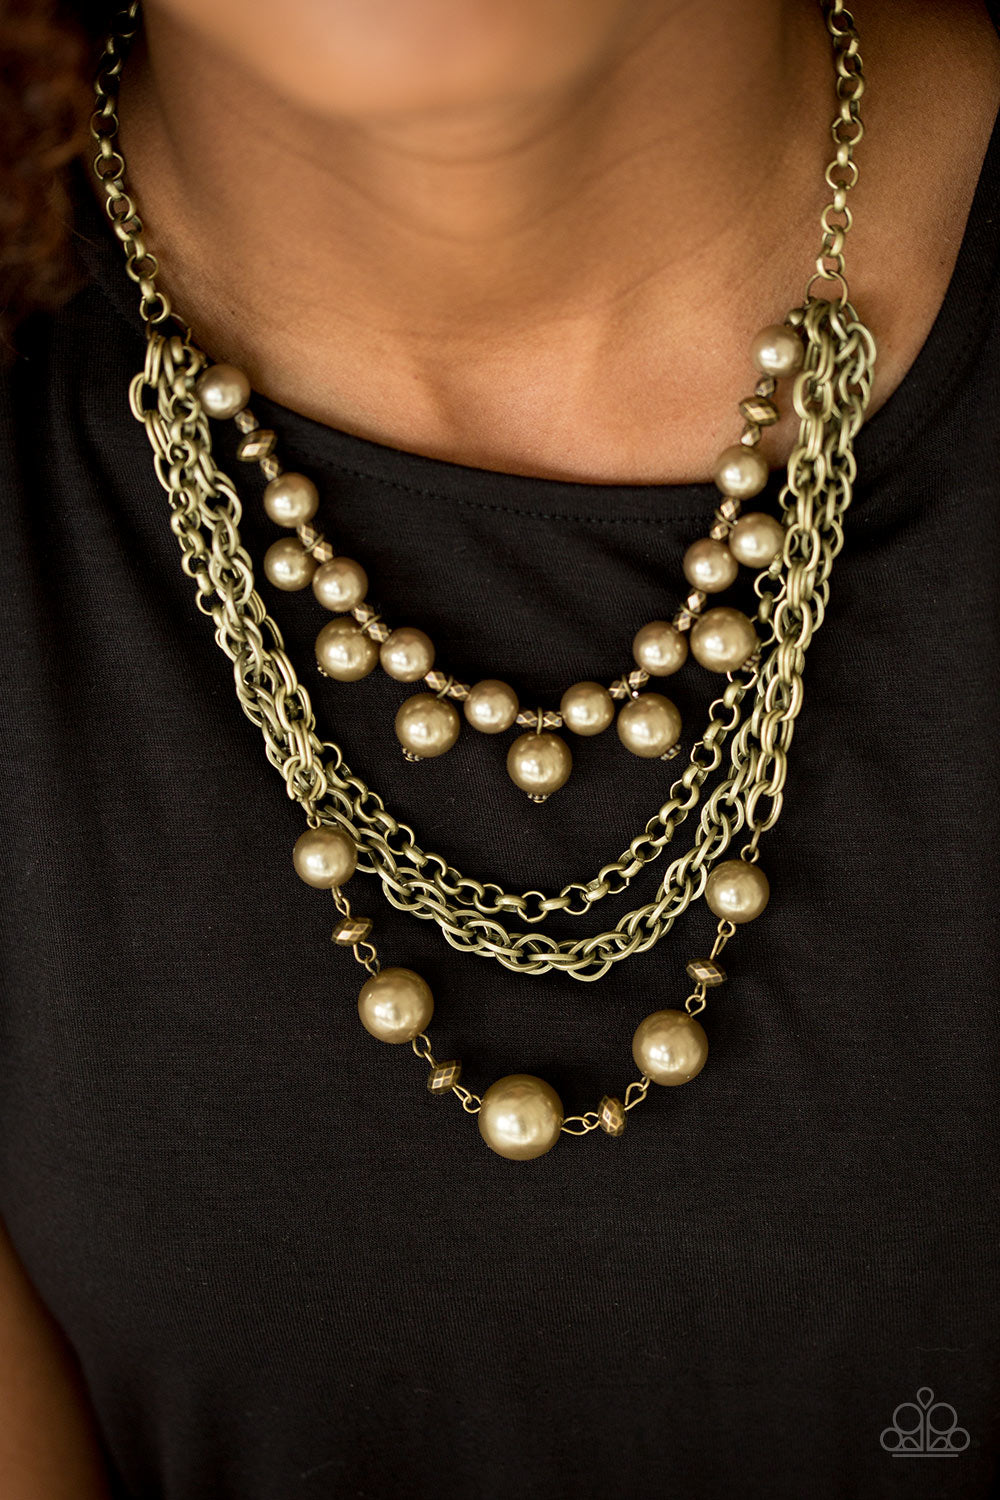 Urban Riches - Brass Paparazzi Necklace - SavvyChicksJewelry